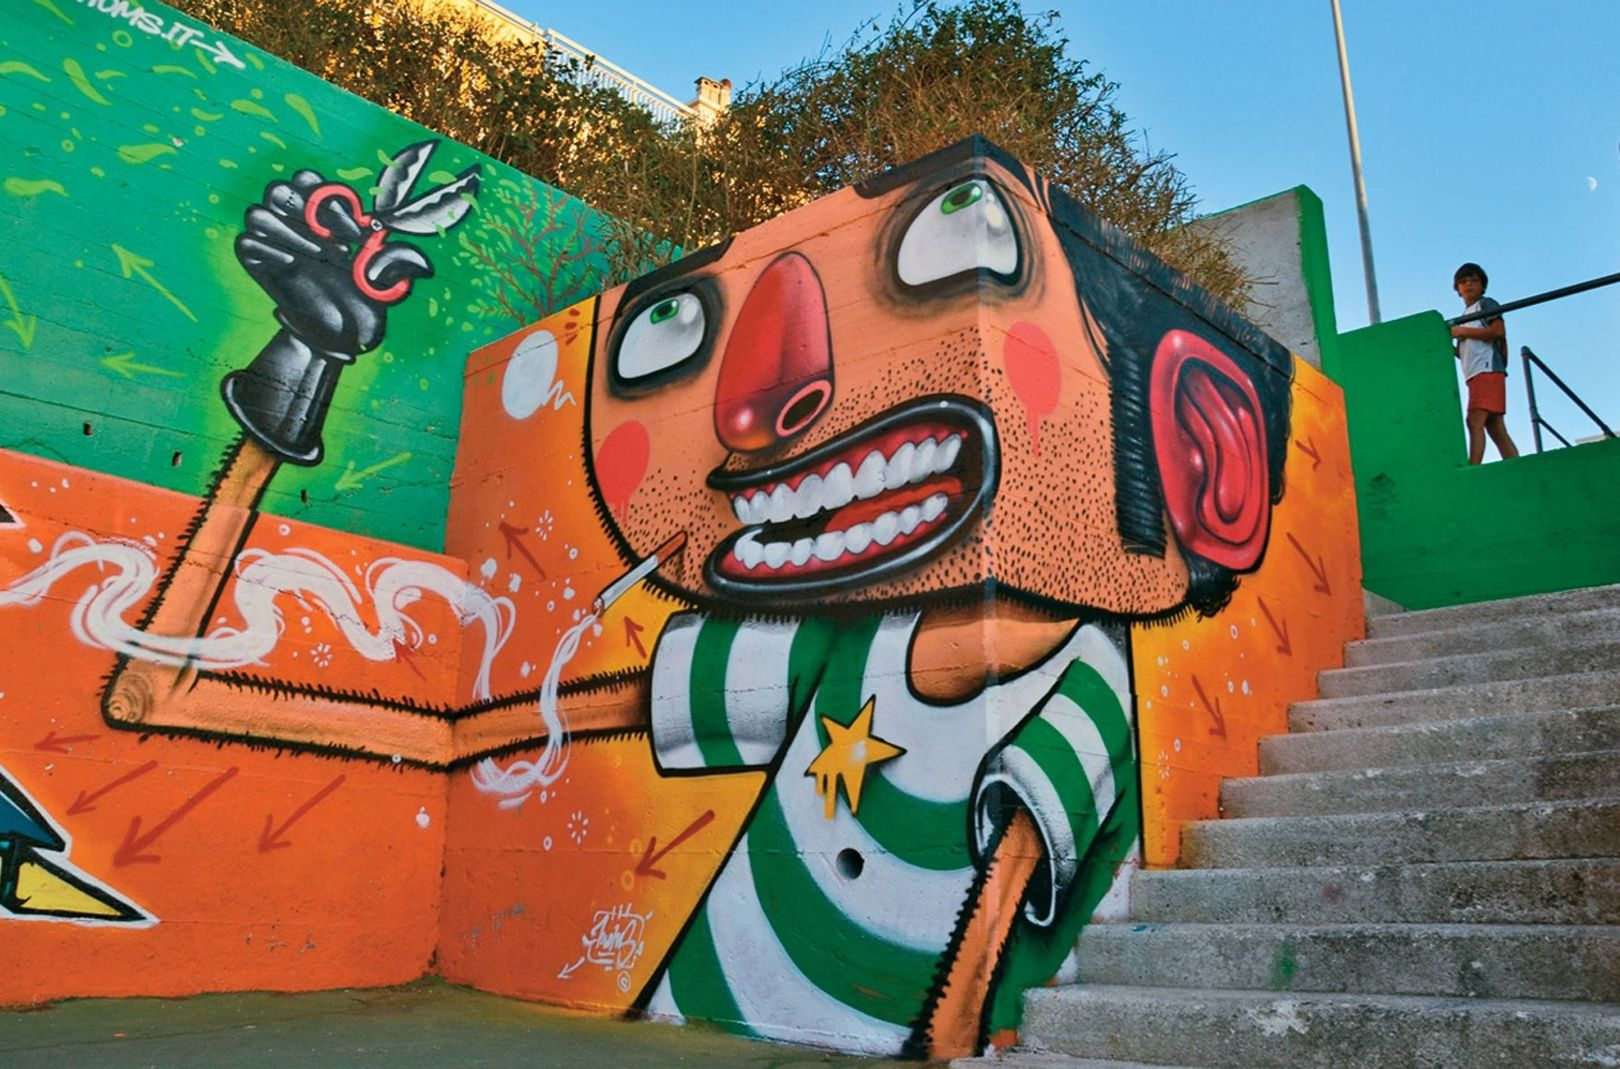 Italian graffiti artist Mr Thoms